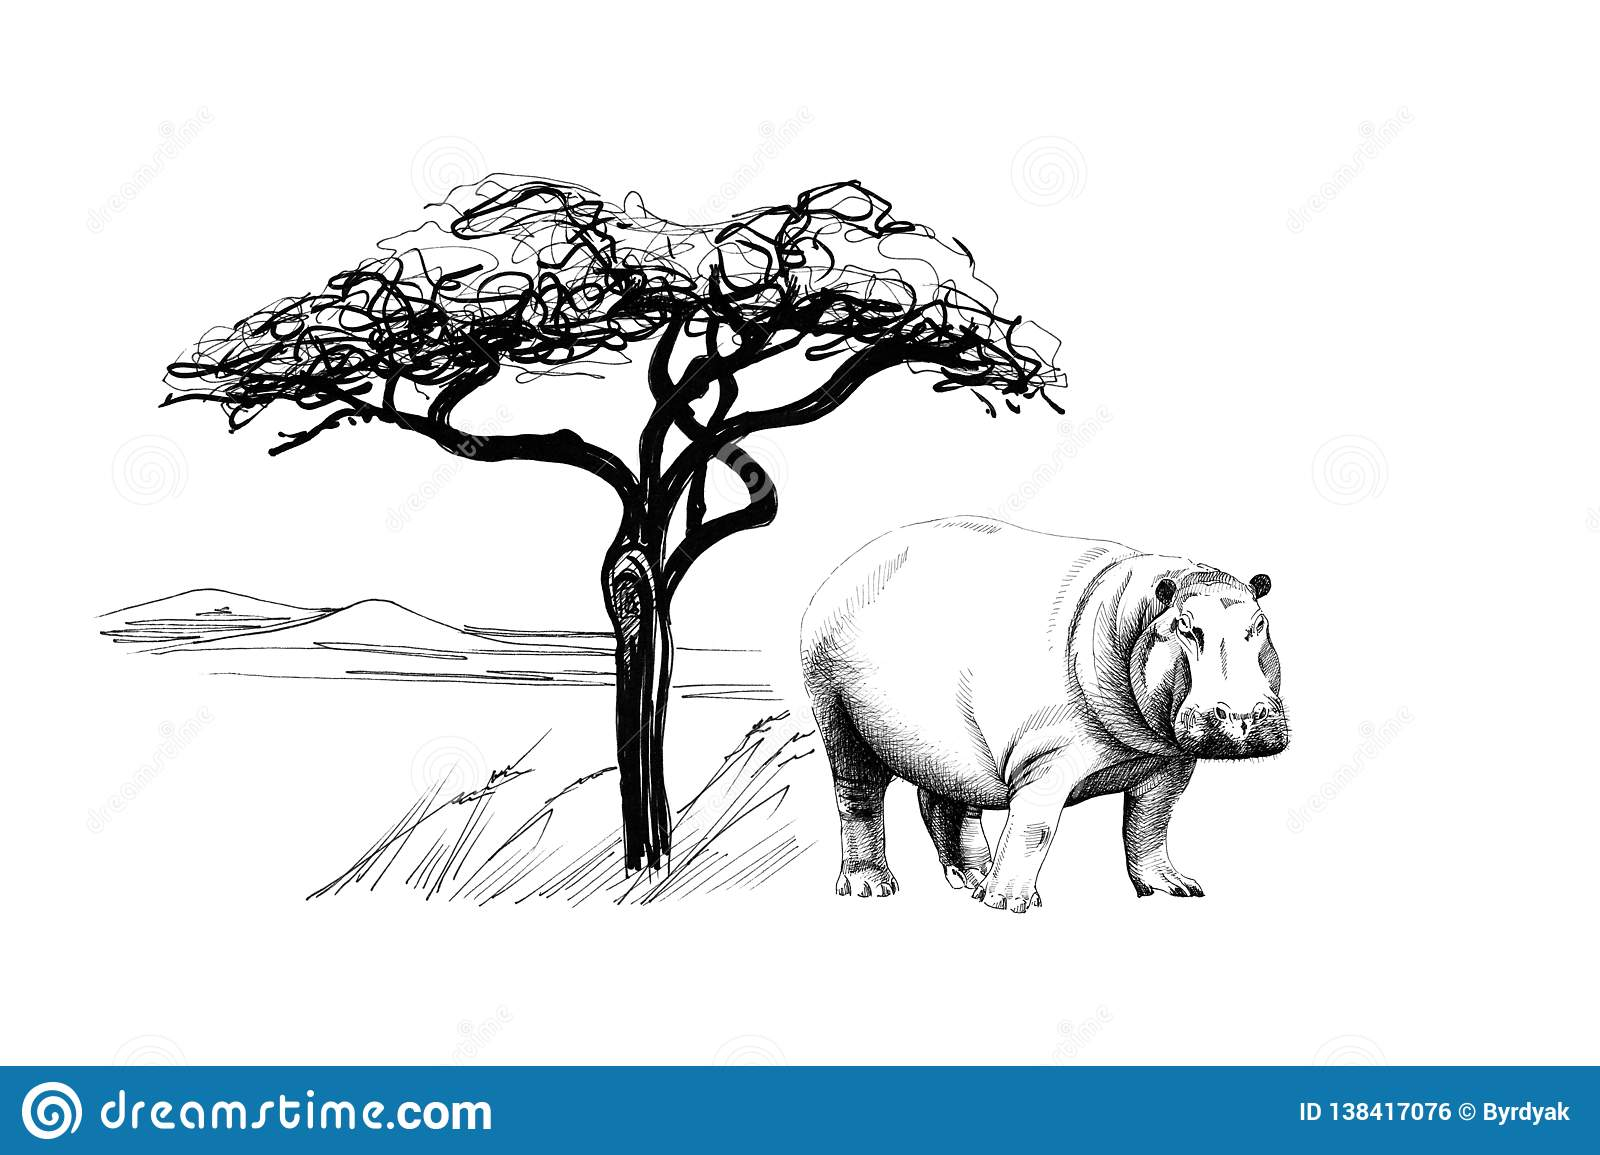 8 Tree Drawing - Tree Drawing No Background , Free Transparent Clipart -  ClipartKey